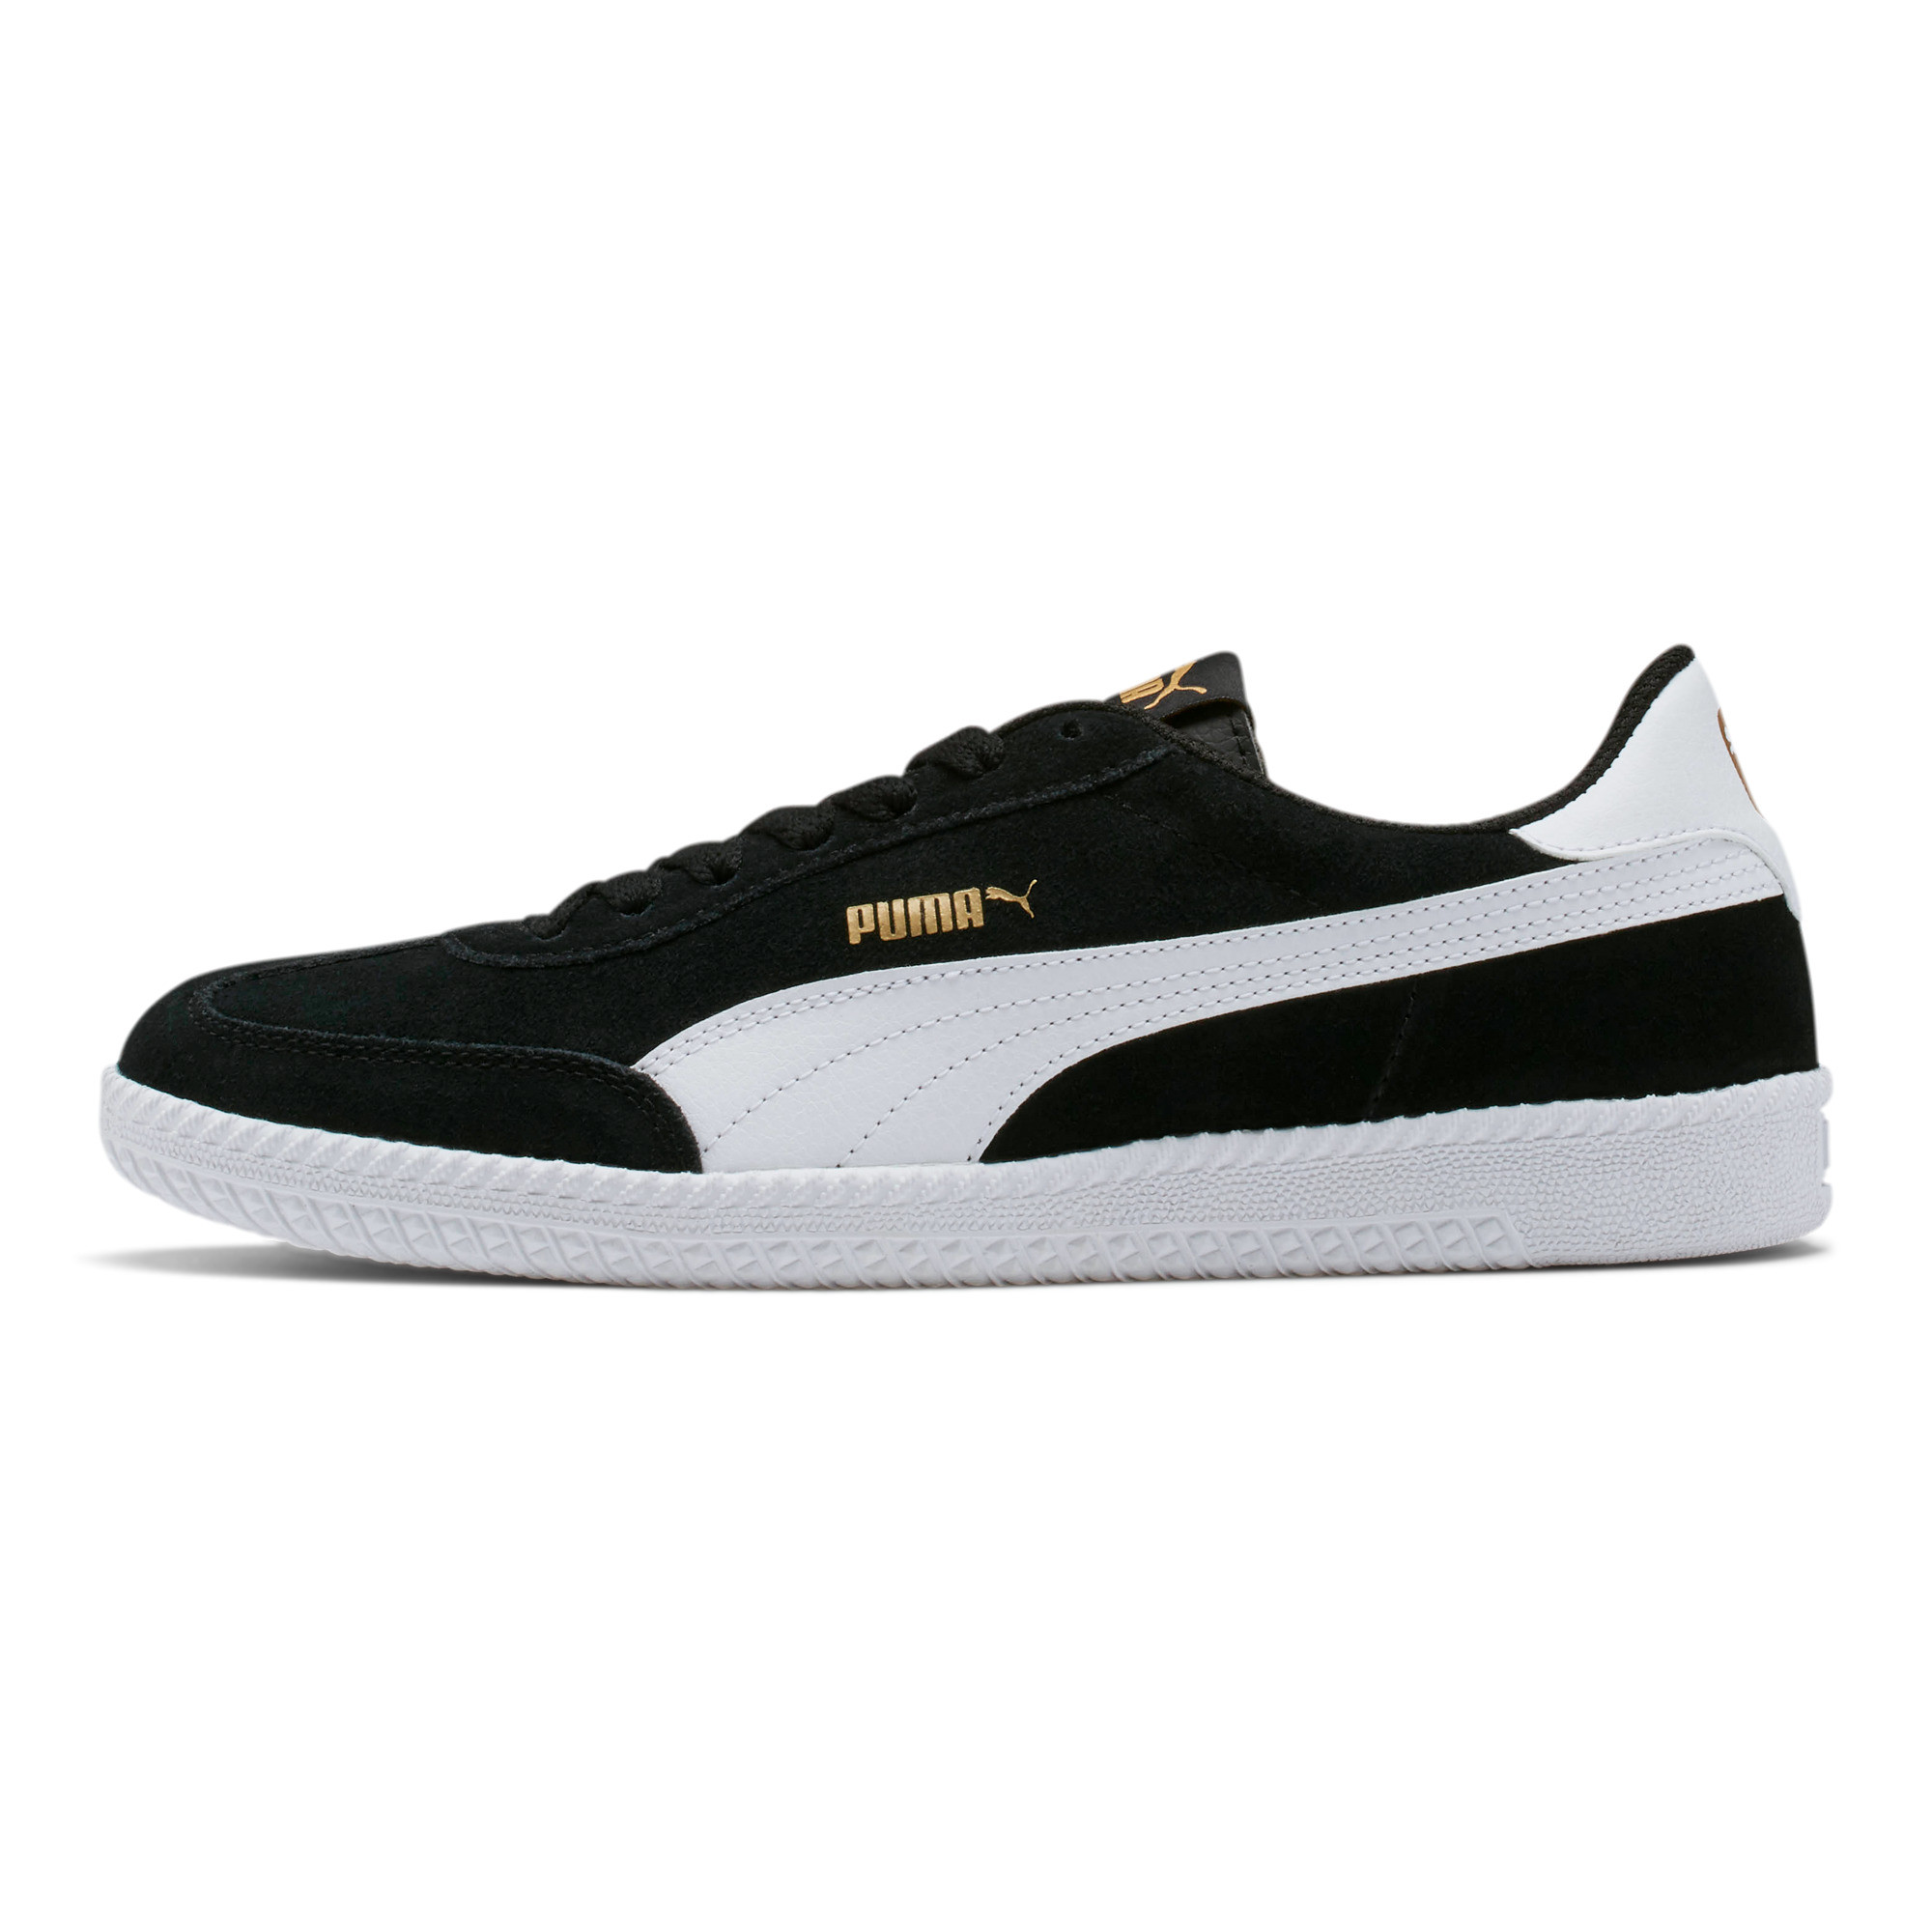 PUMA-Astro-Cup-Suede-Sneakers-Men-Shoe-Basics thumbnail 9